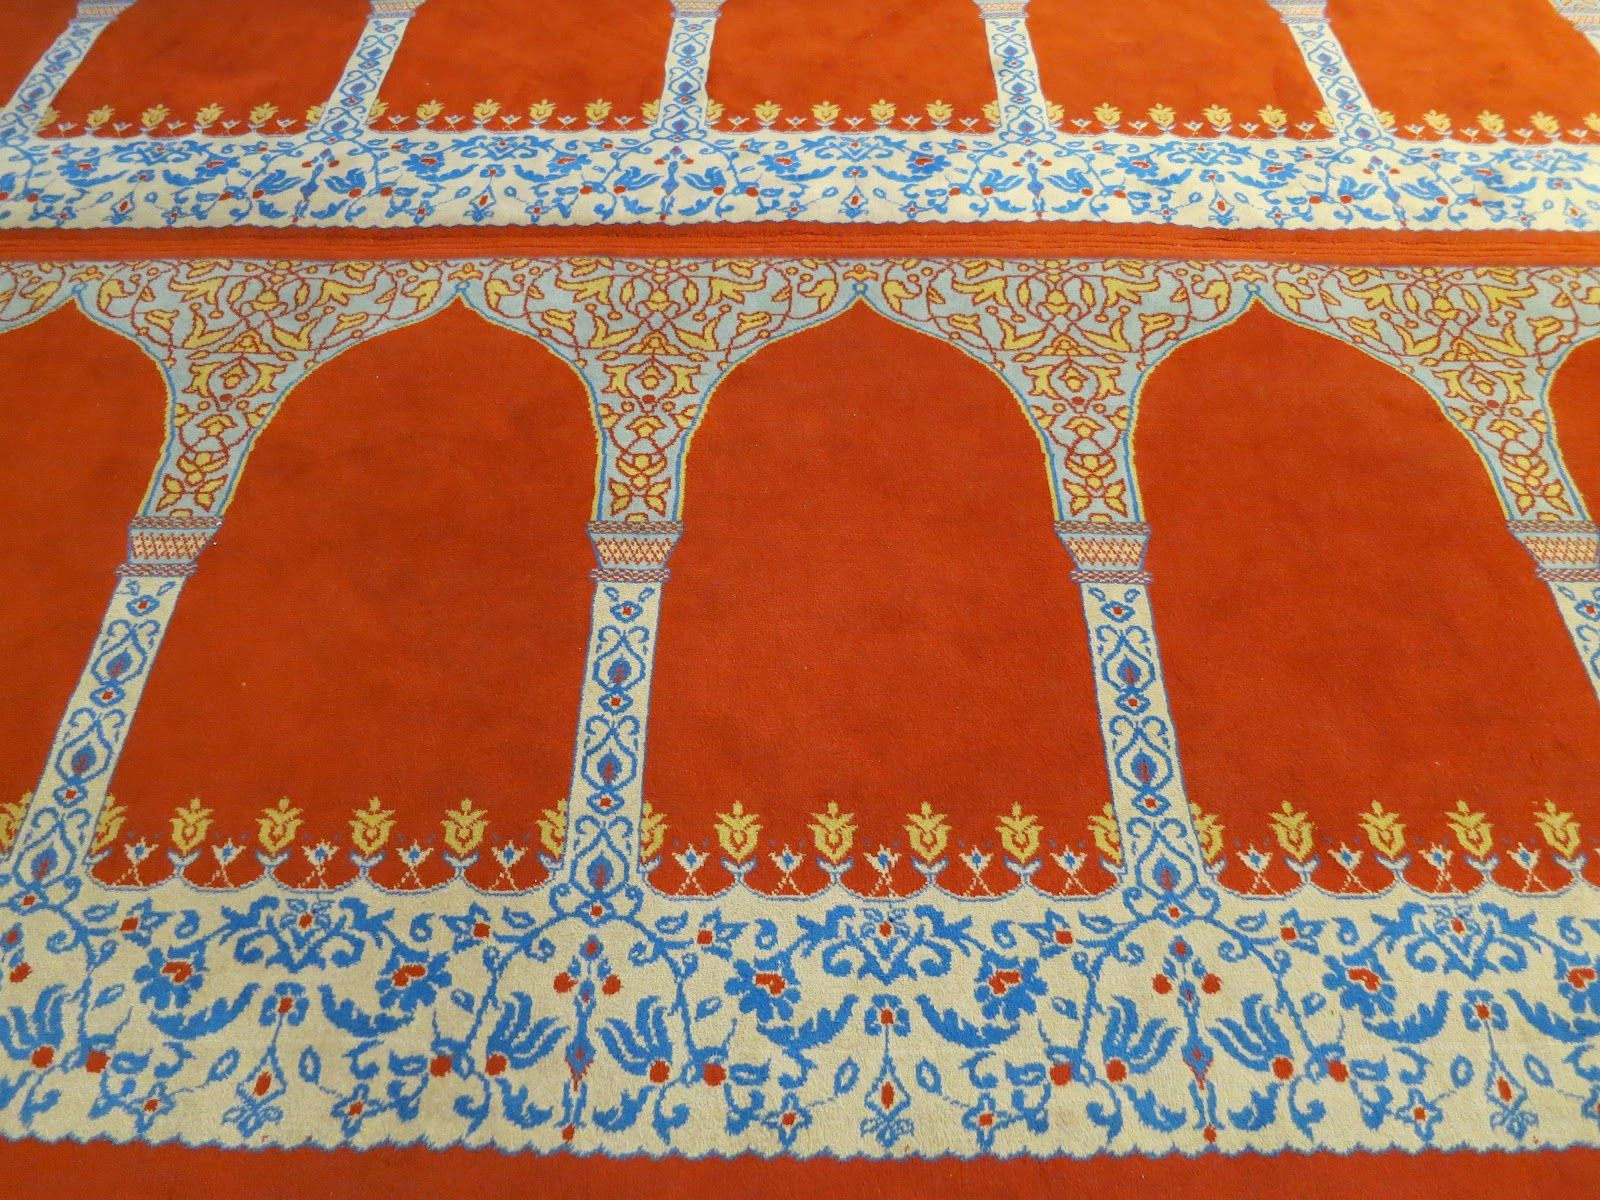 What is the best carpet to buy for the price - Mosque Carpets You Can Buy Various High Quality Mosque Carpet Products From Dubaifurniture Co